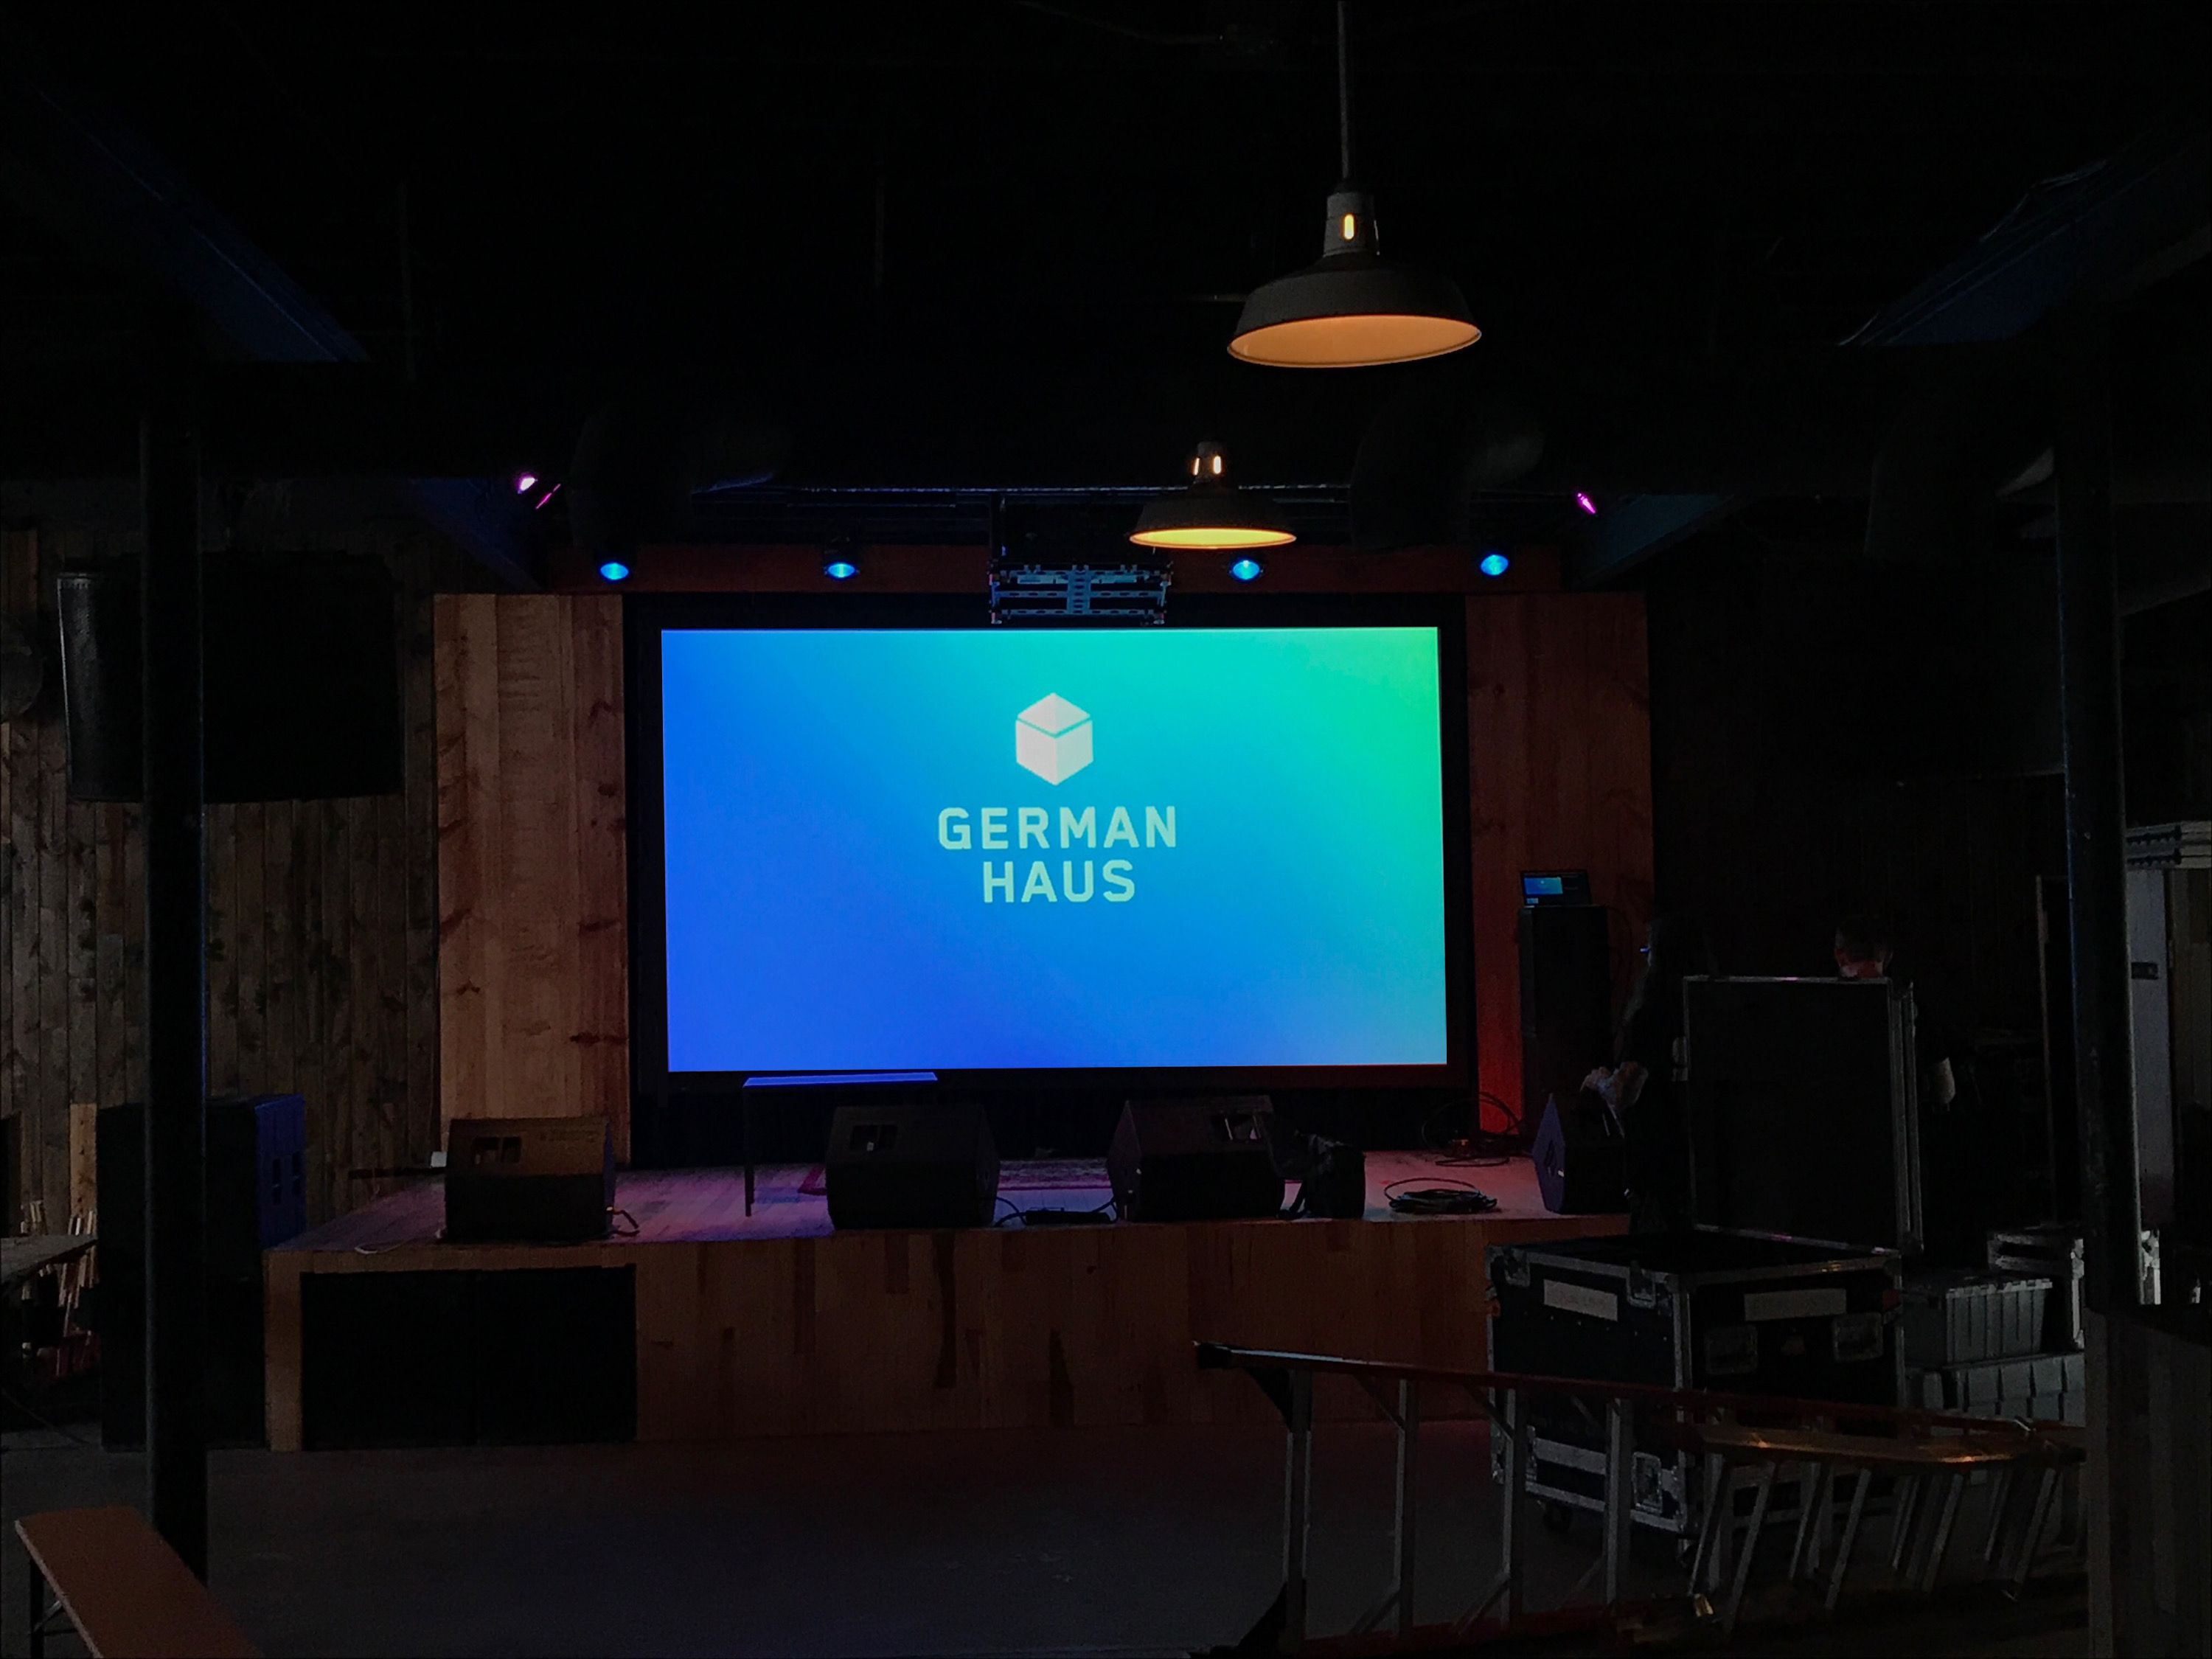 Projector Screen with German Haus Logo